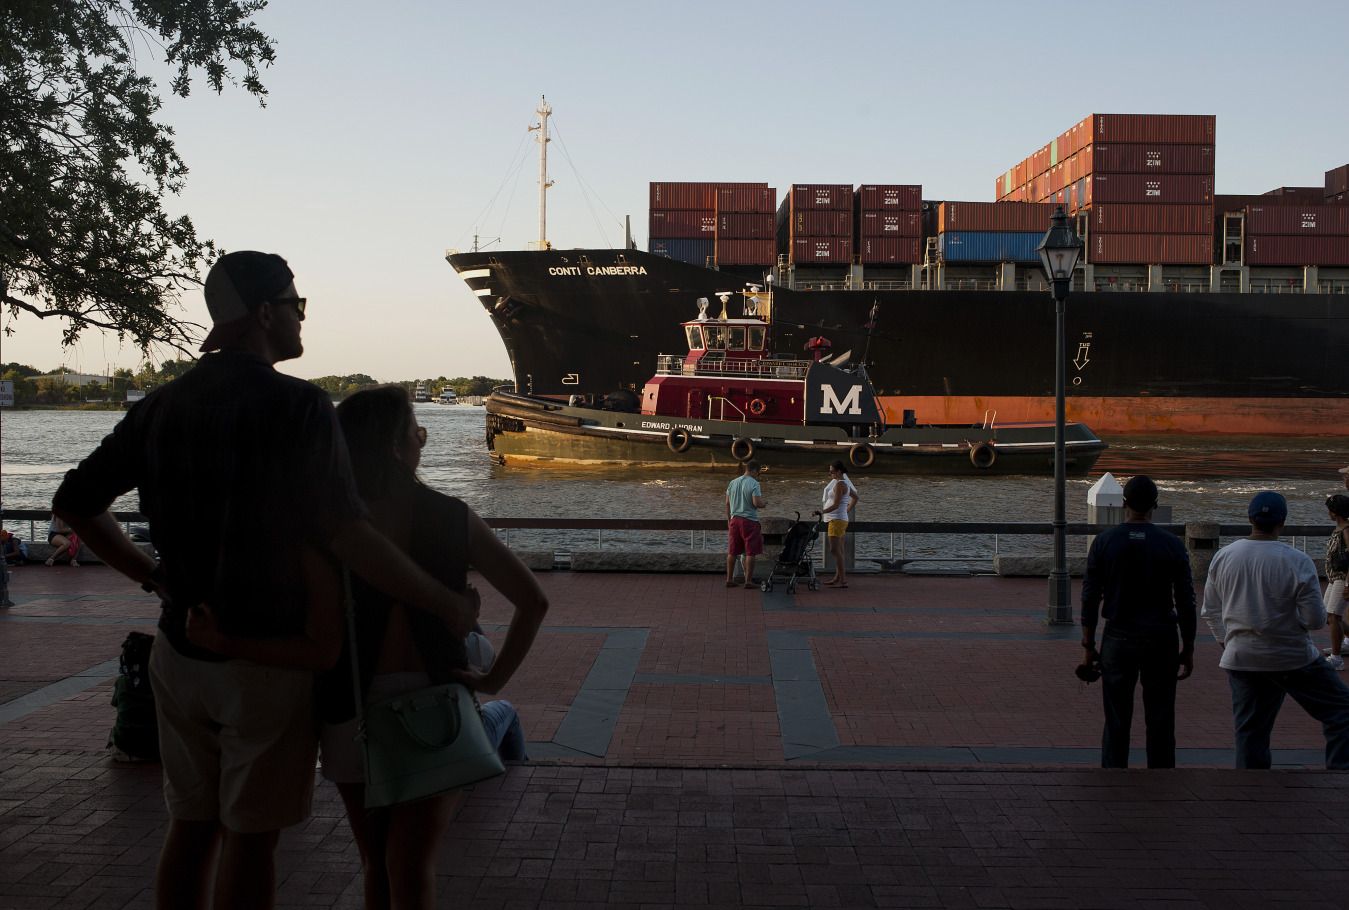 Pedestrians watch from River Street as a cargo ship and a tug boat travel into the Port of Savannah on the Savannah River in Savannah, Georgia, U.S.